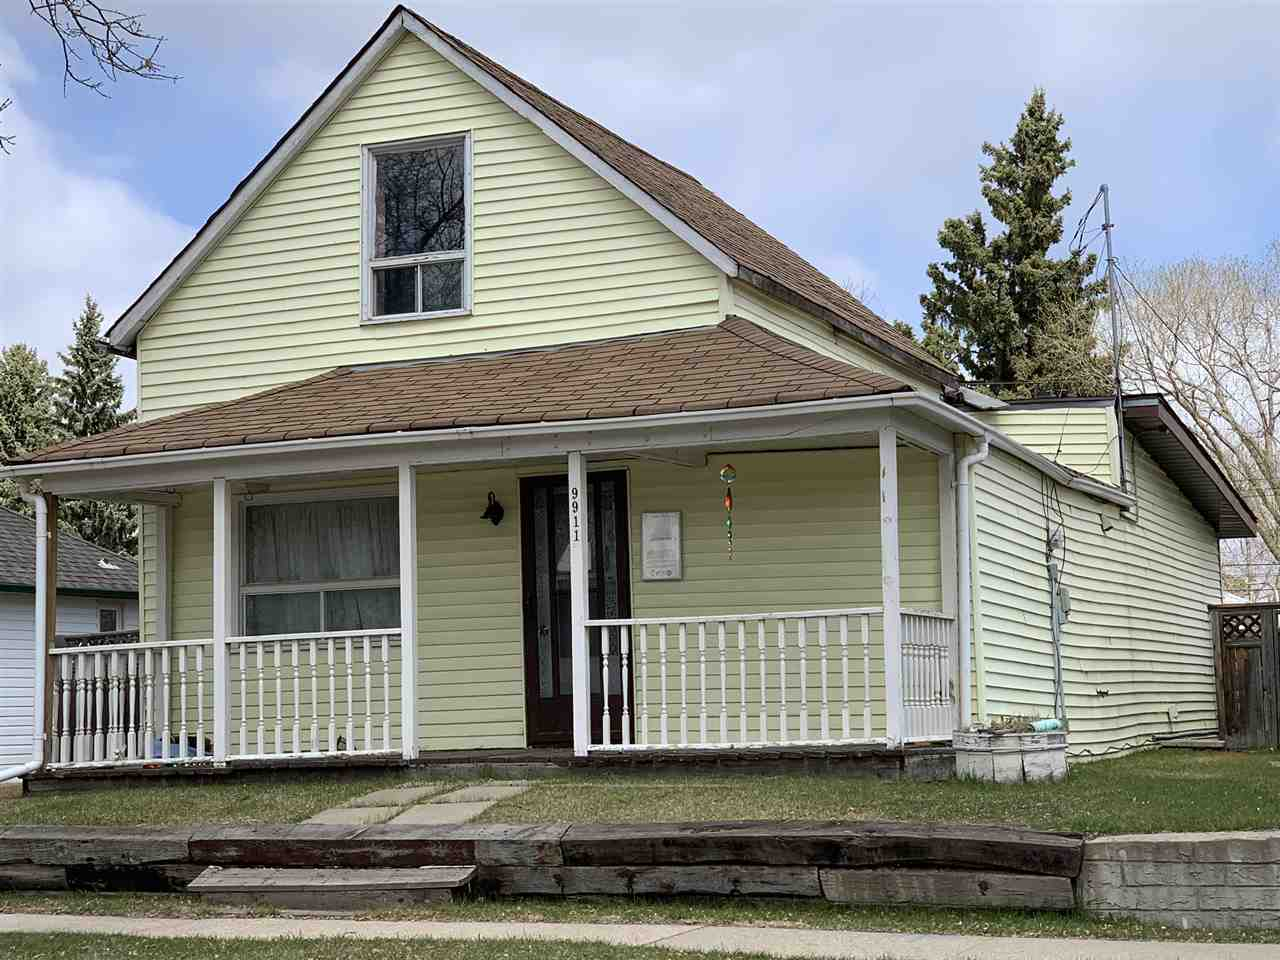 A True Classic! This 1 1/2 storey home offers 1109 Sq FT offers numerous upgrades over the years including the electrical, shingles, vinyl windows and much more. It has a double detached garage. Situated in Fort Saskatchewan, a great place to call home!